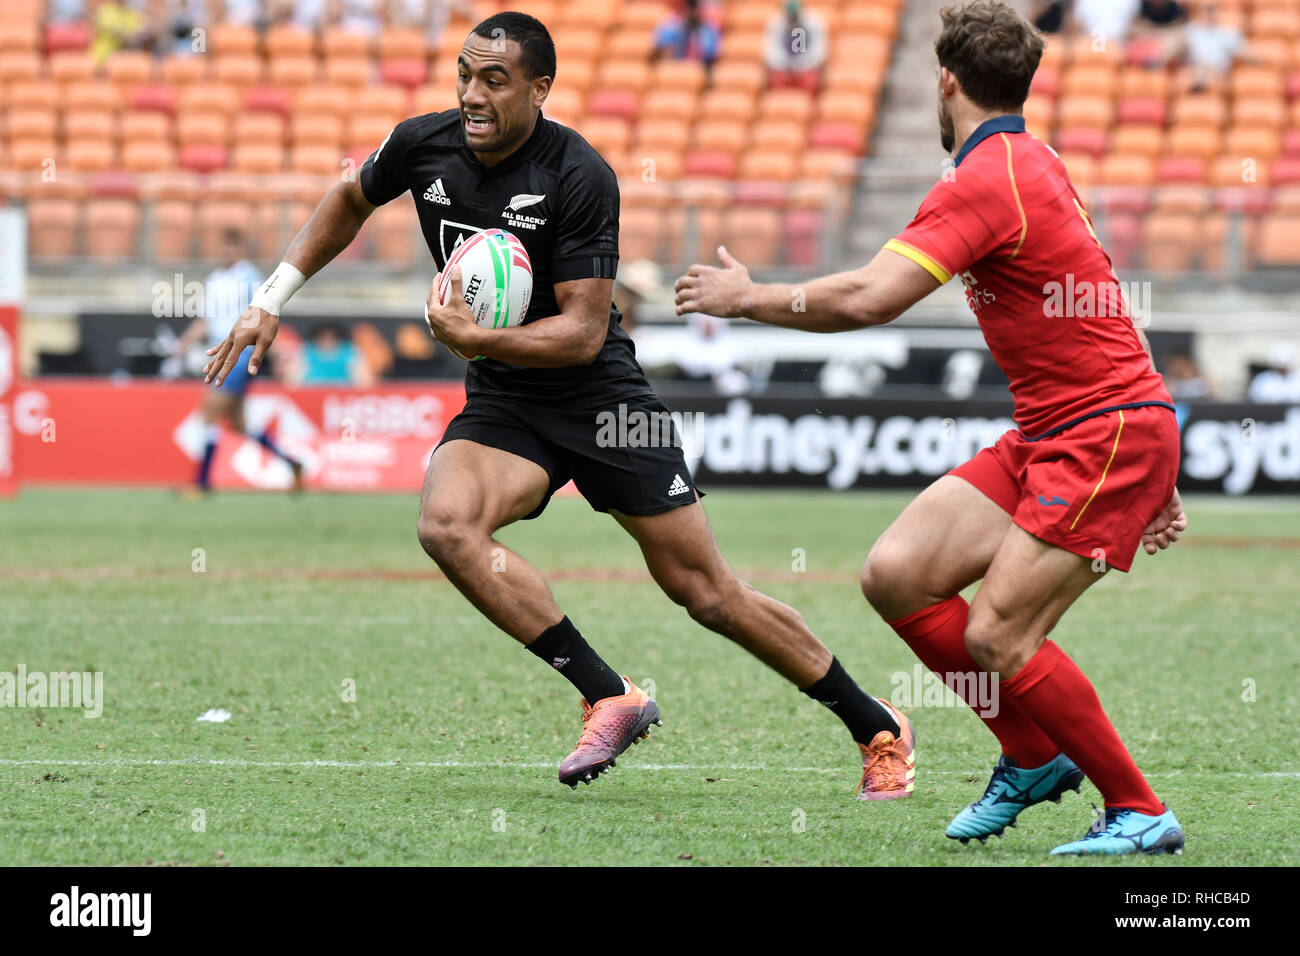 Spotless Stadium, Sydney, Australia. 2nd Feb, 2019. HSBC Sydney Rugby Sevens; New Zealand versus Spain; Sione Molia of New Zealand makes a run as Manuel Sainz-Trapaga of Spain approaches Credit: Action Plus Sports/Alamy Live News - Stock Image